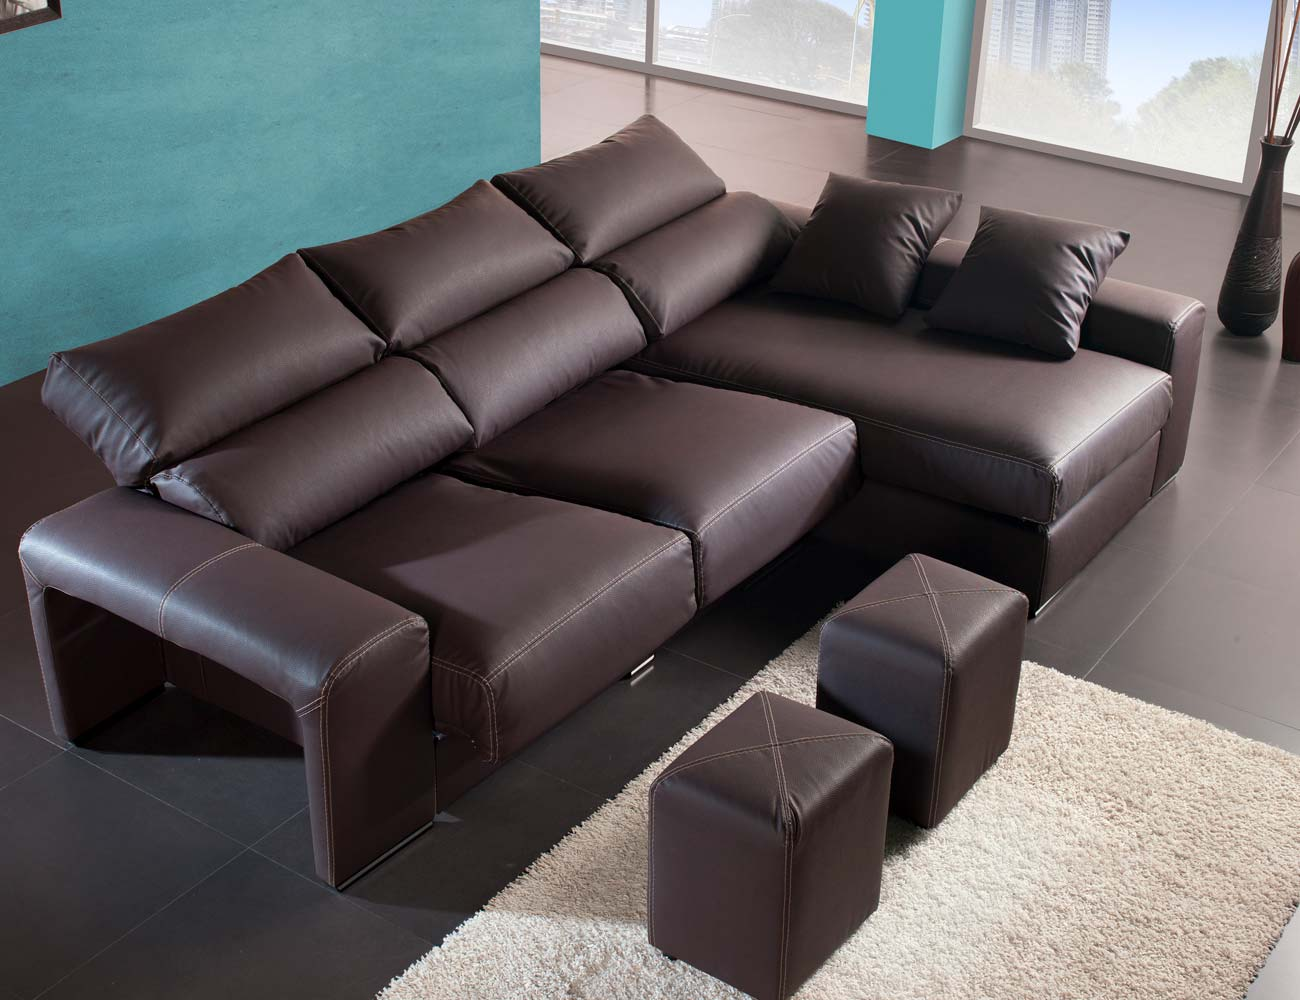 Sofa chaiselongue moderno polipiel chocolate poufs taburetes48